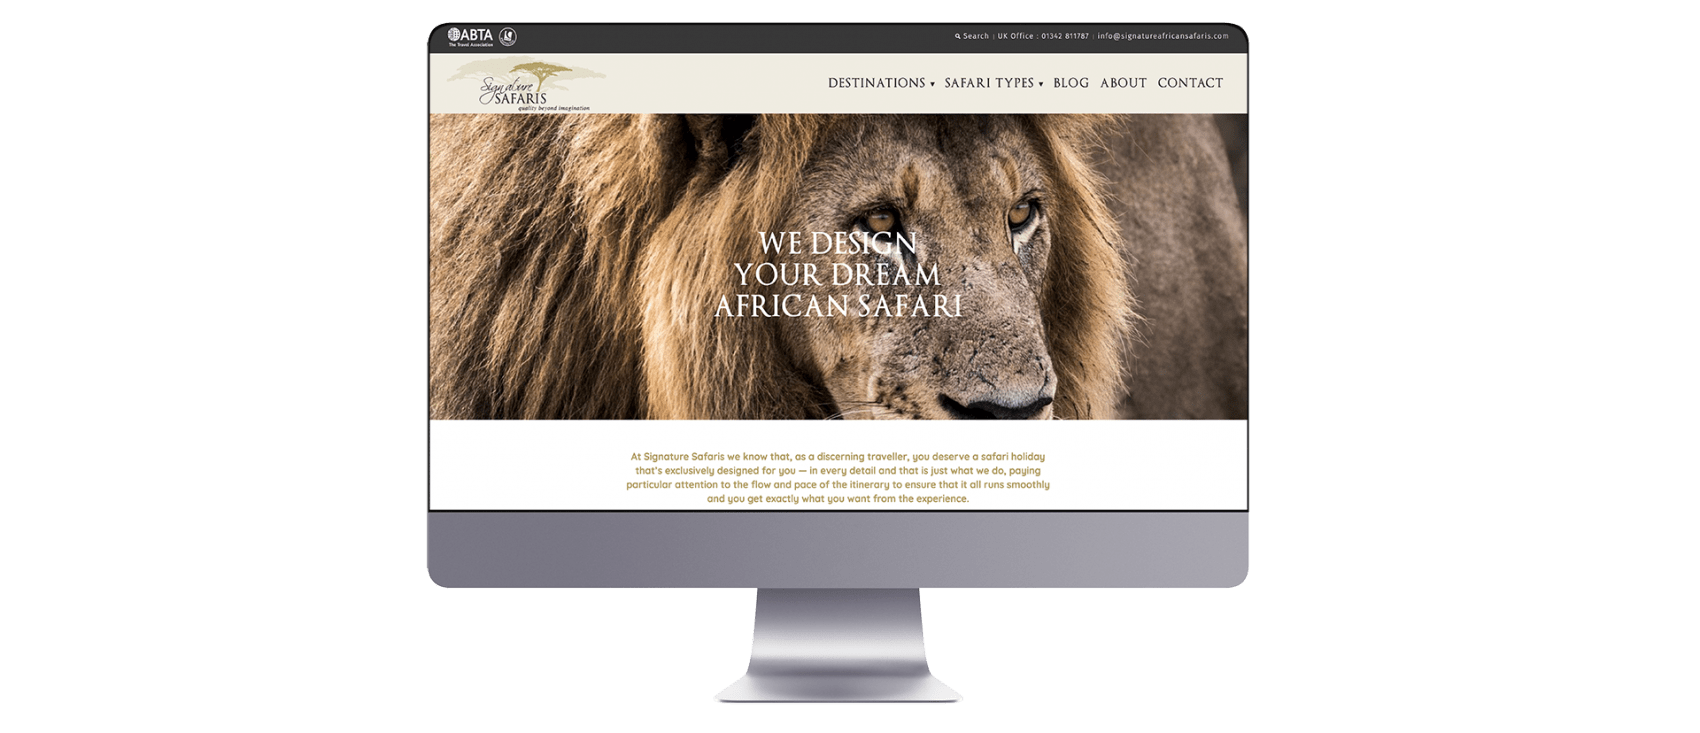 Signature safaris website design on Mac